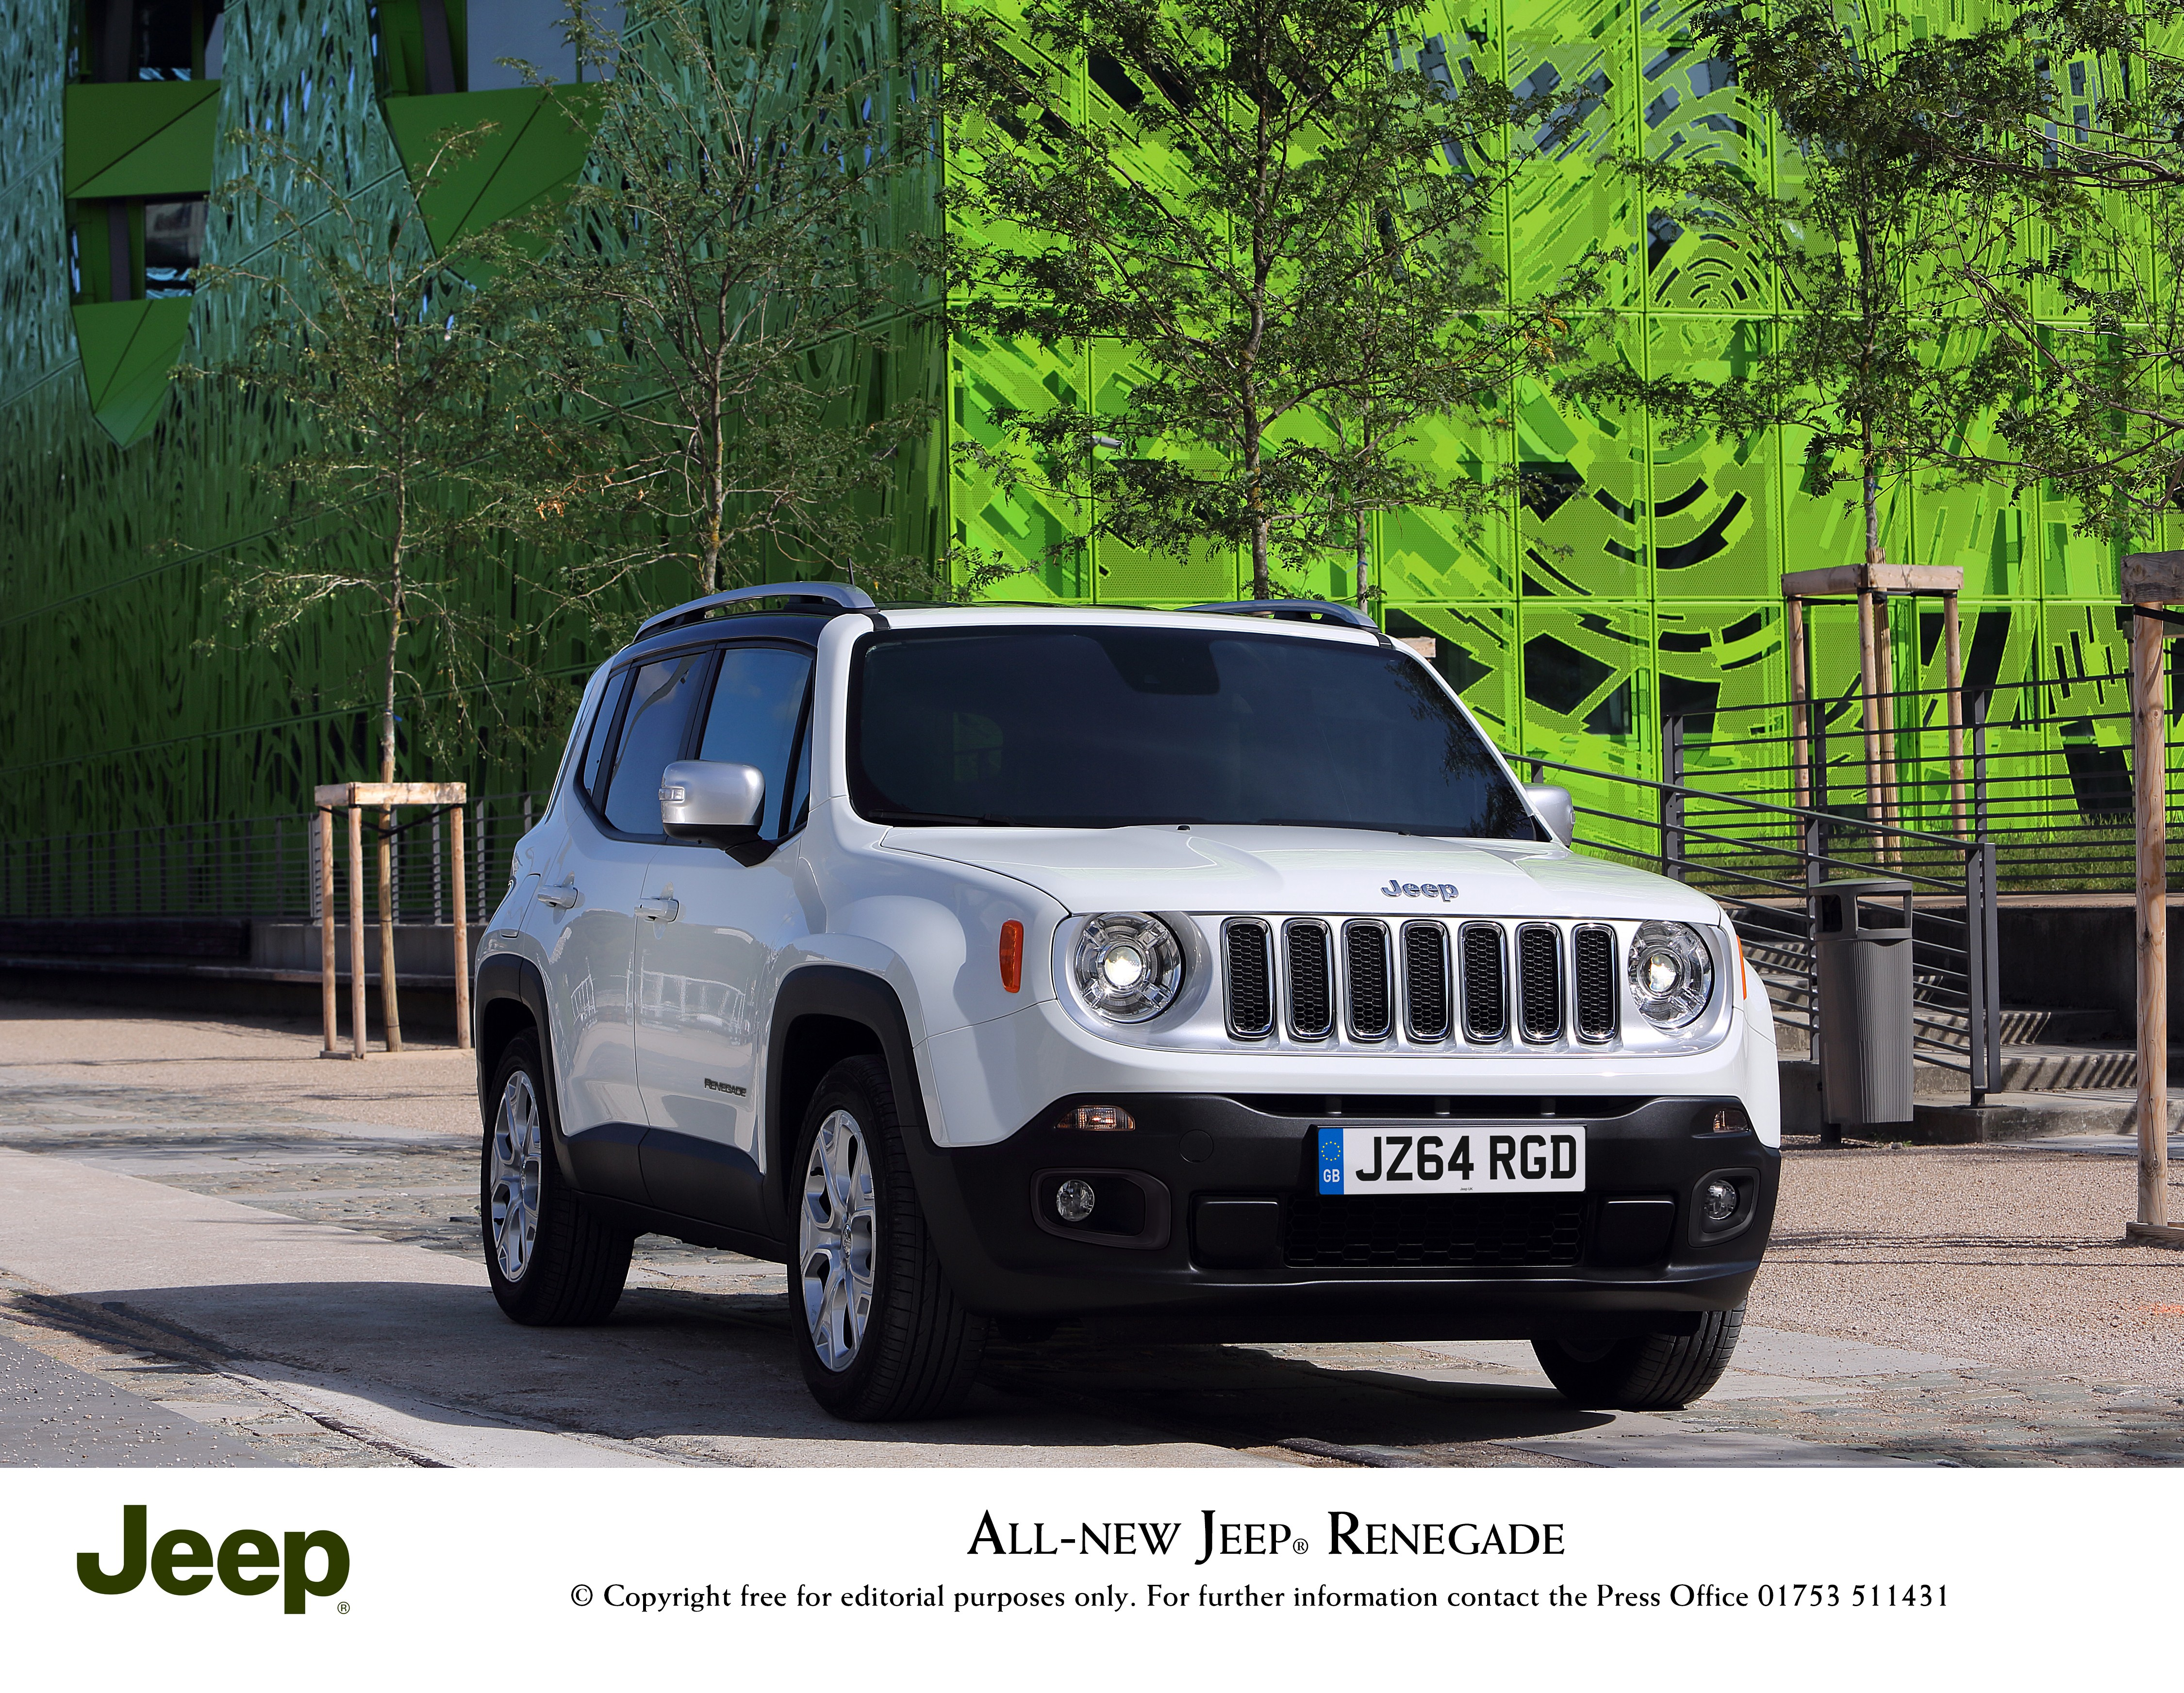 cars commander renegade speed comman concept top jeep new